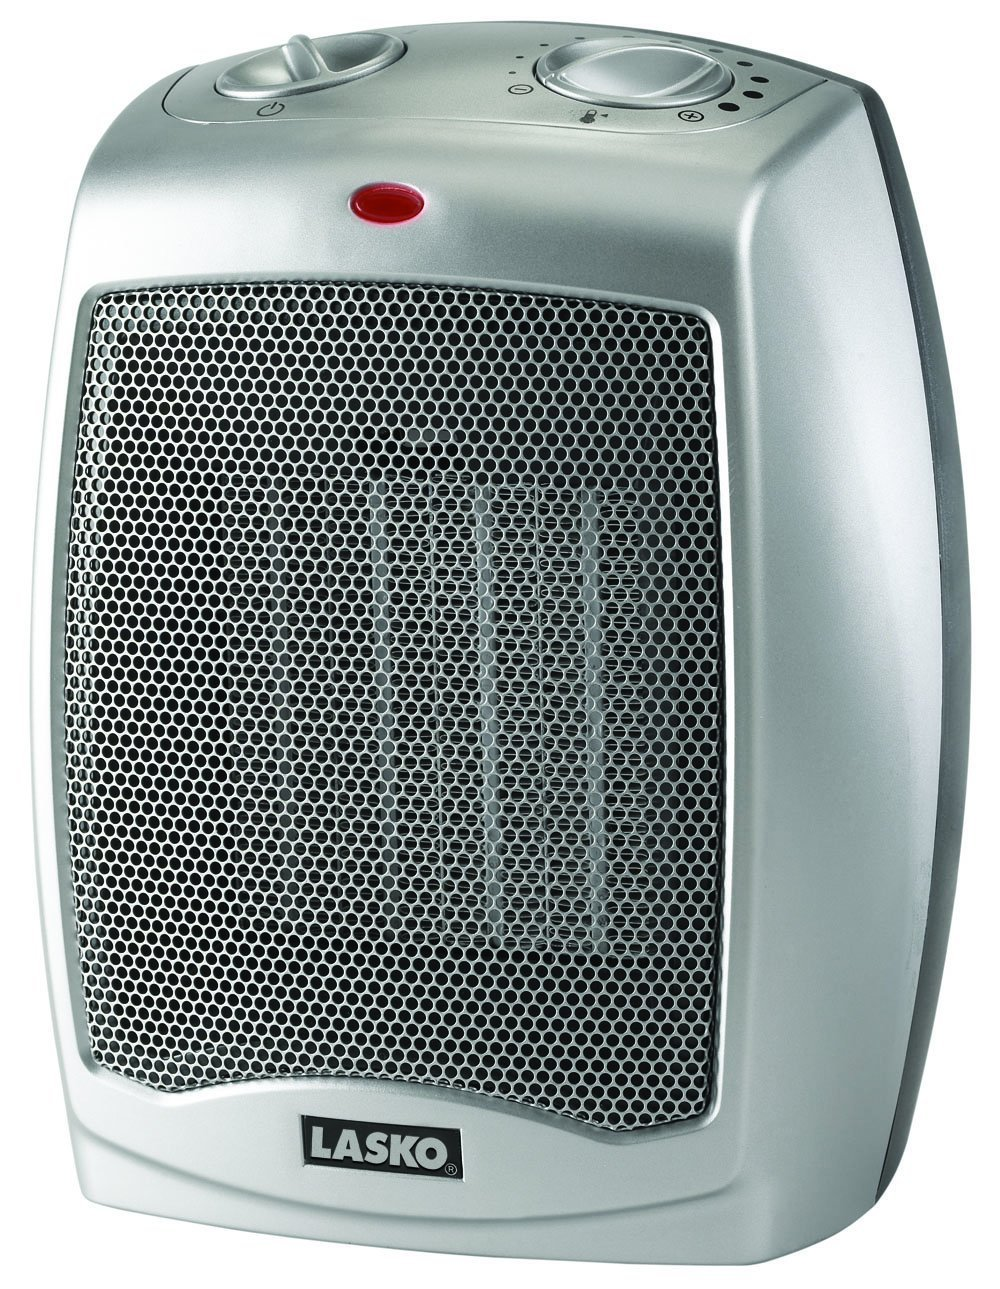 Lasko 754200 Ceramic Heater with Thermostat